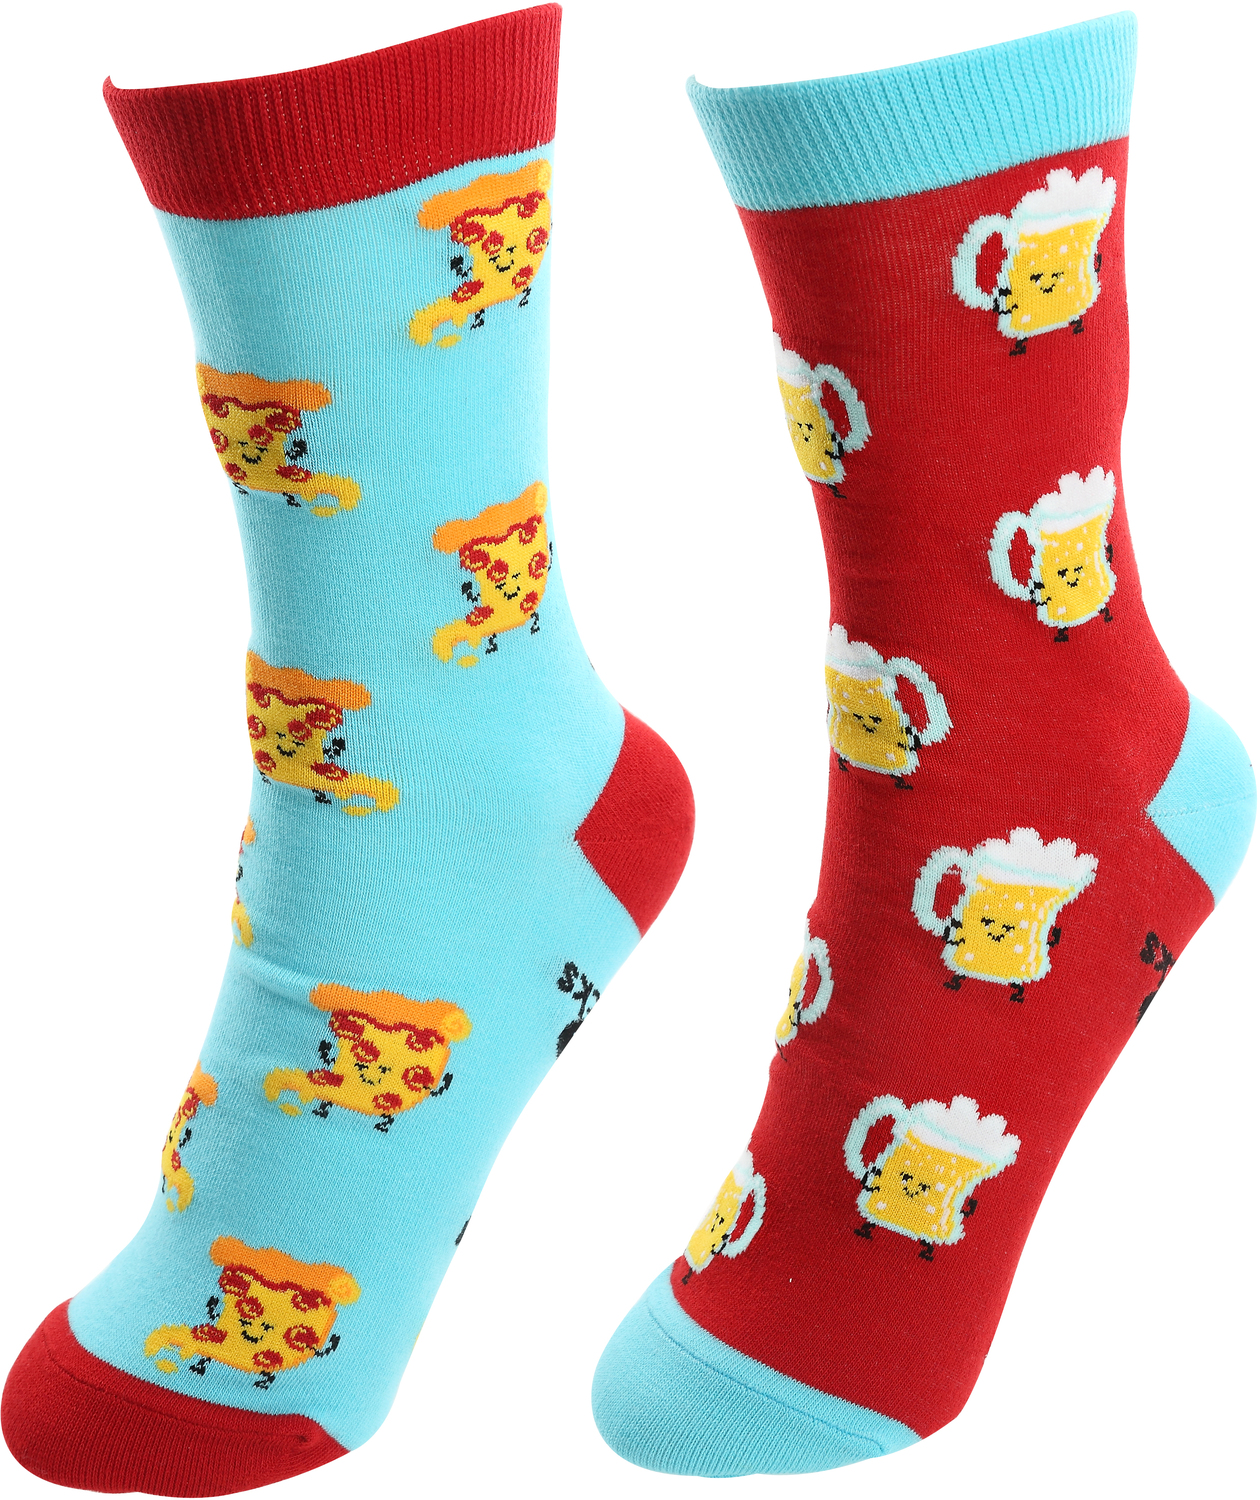 Beer and Pizza by Late Night Snacks - Beer and Pizza - S/M Unisex Socks